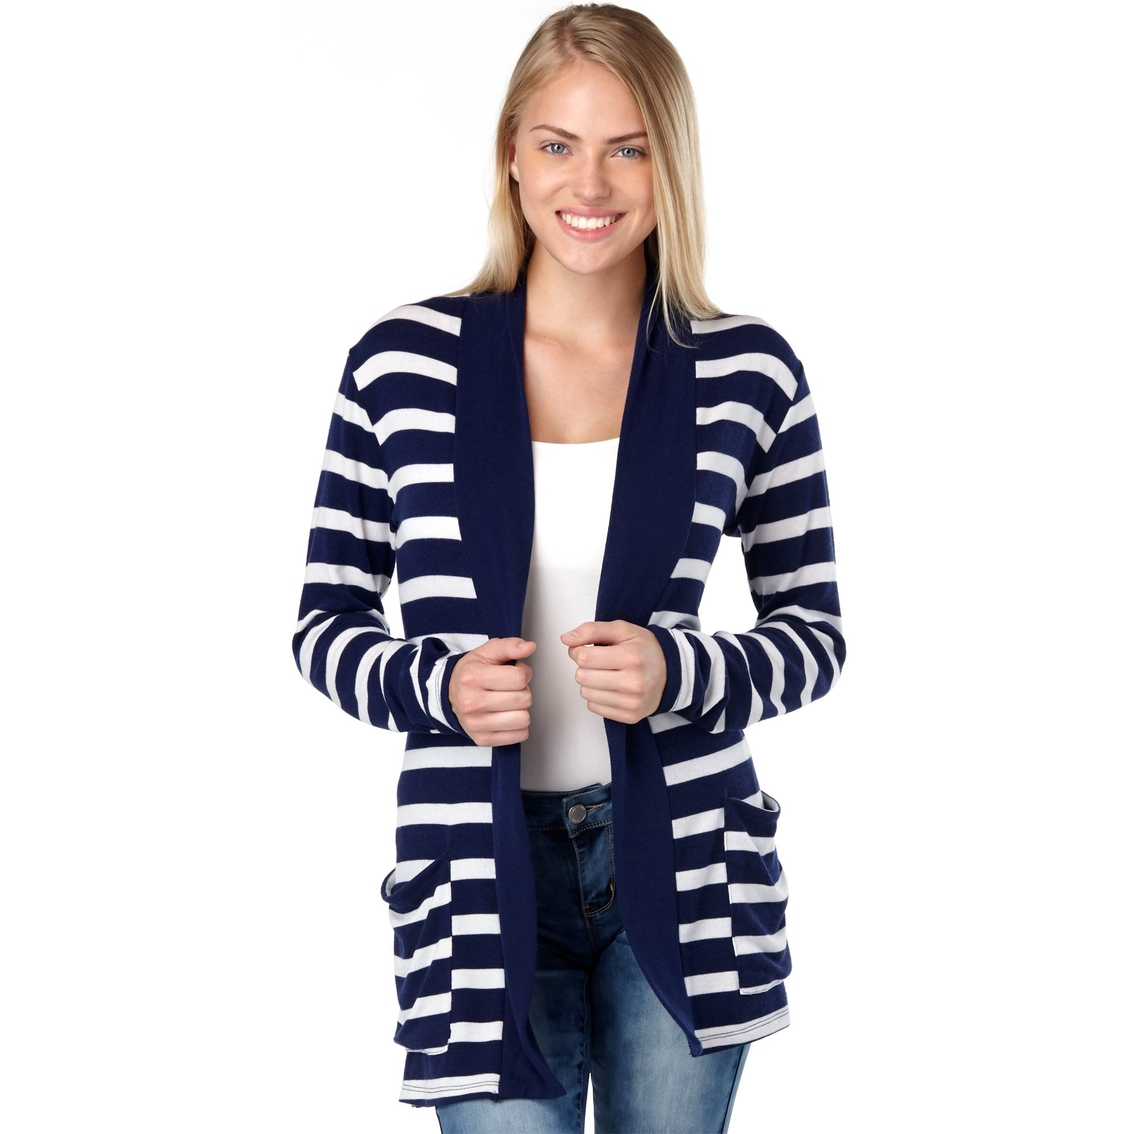 Poof Juniors Striped Knit Cardigan Sweaters Apparel Shop The